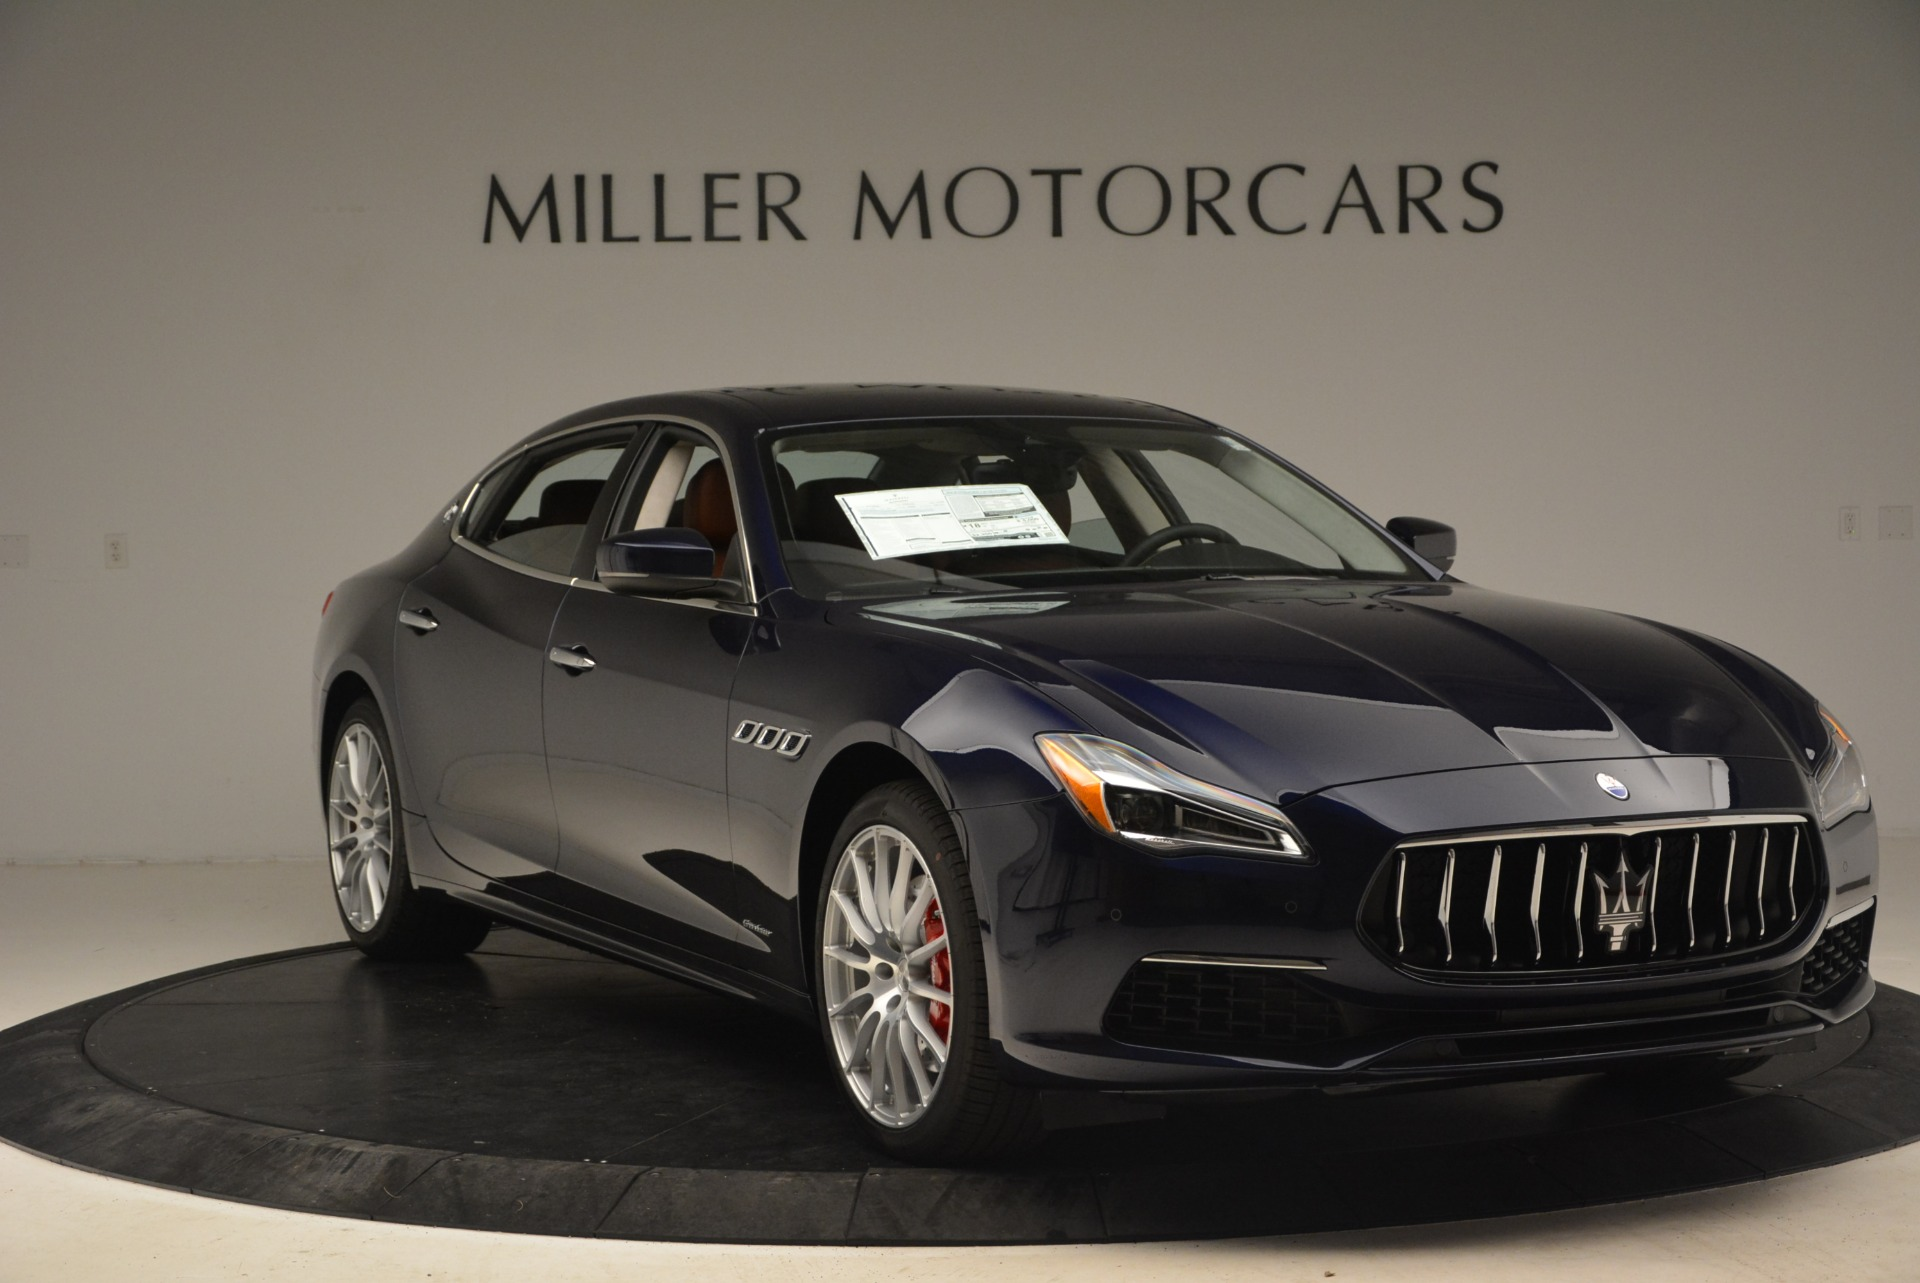 New 2019 Maserati Quattroporte S Q4 GranLusso For Sale In Greenwich, CT 2767_p11